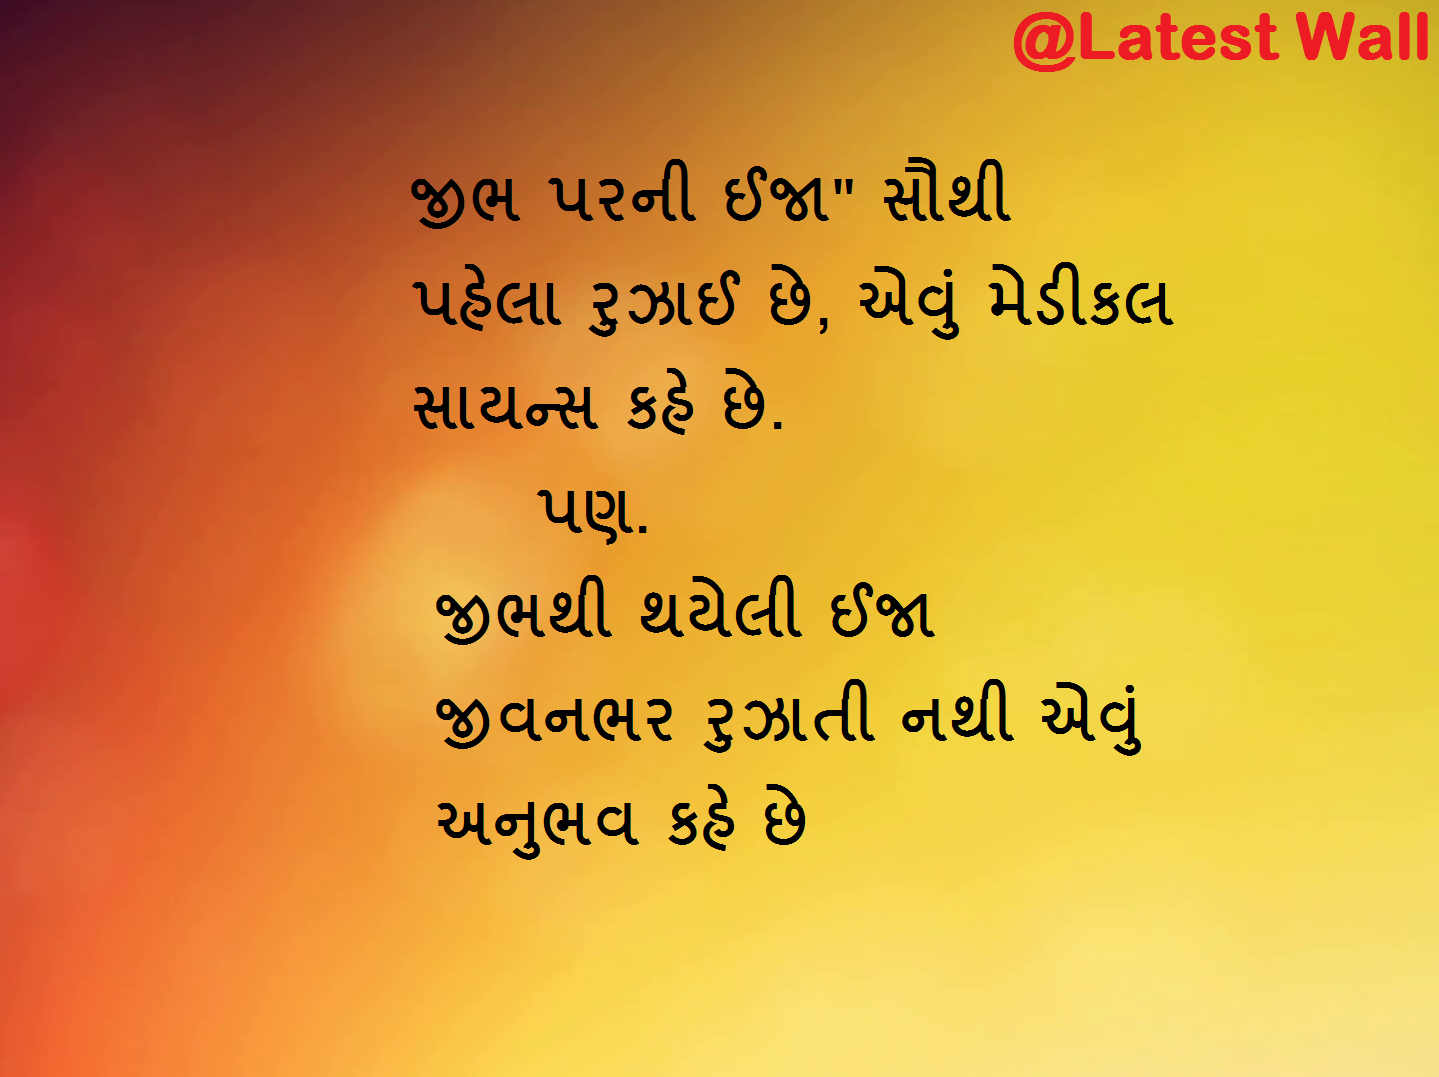 Gujarati Suvichar Experience Daily Inspiration Quotes Morning Prayer Quotes Good Morning Quotes [ 1077 x 1439 Pixel ]